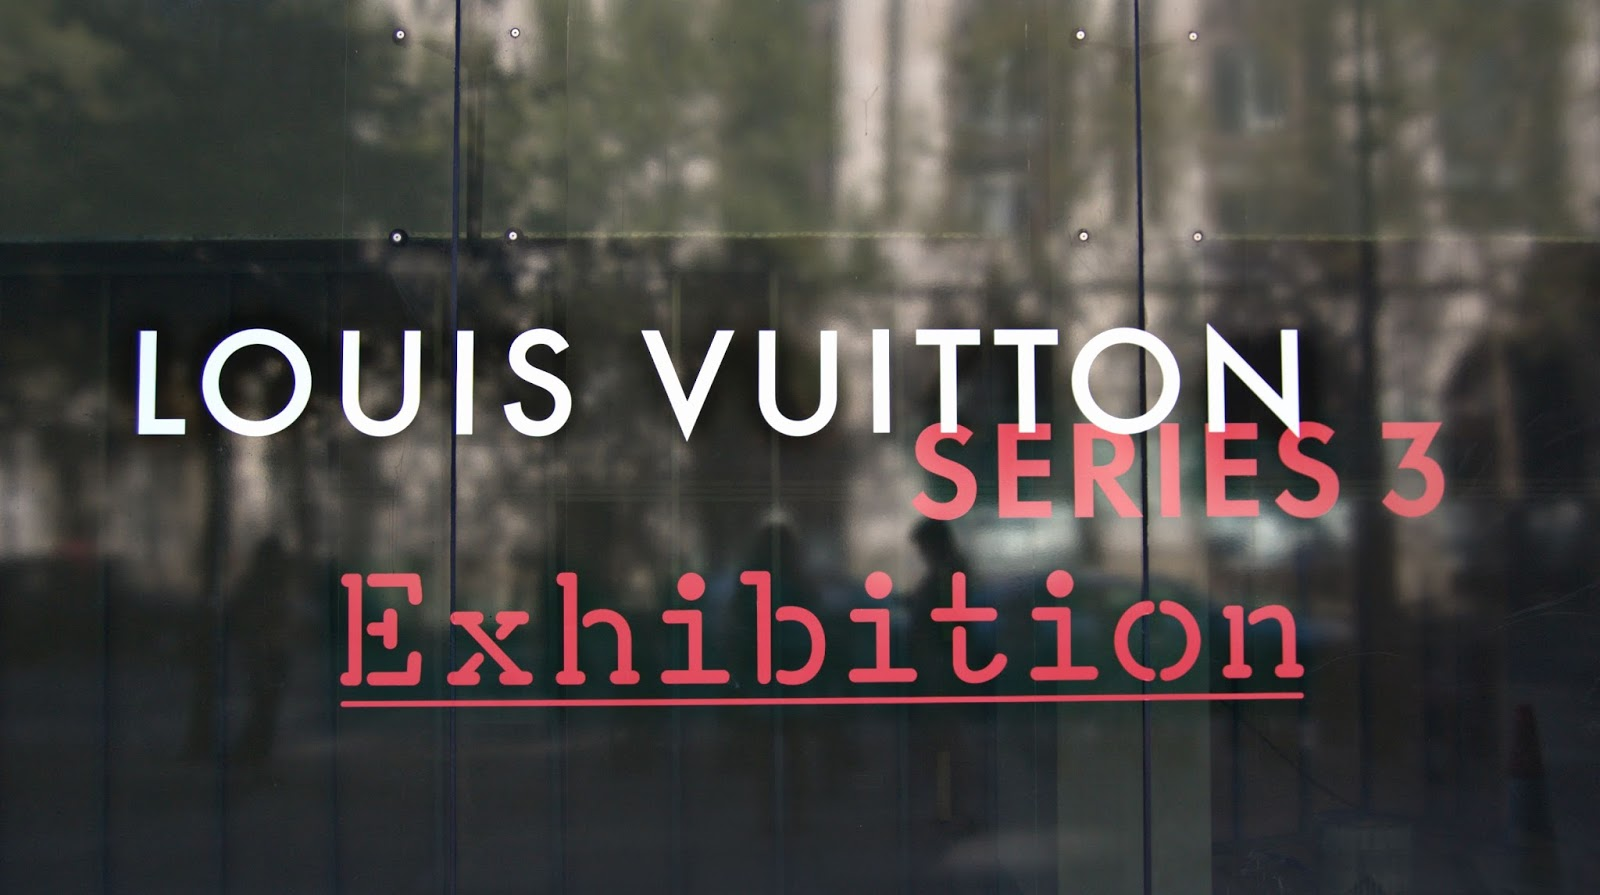 louis vuitton series 3 exhibition london